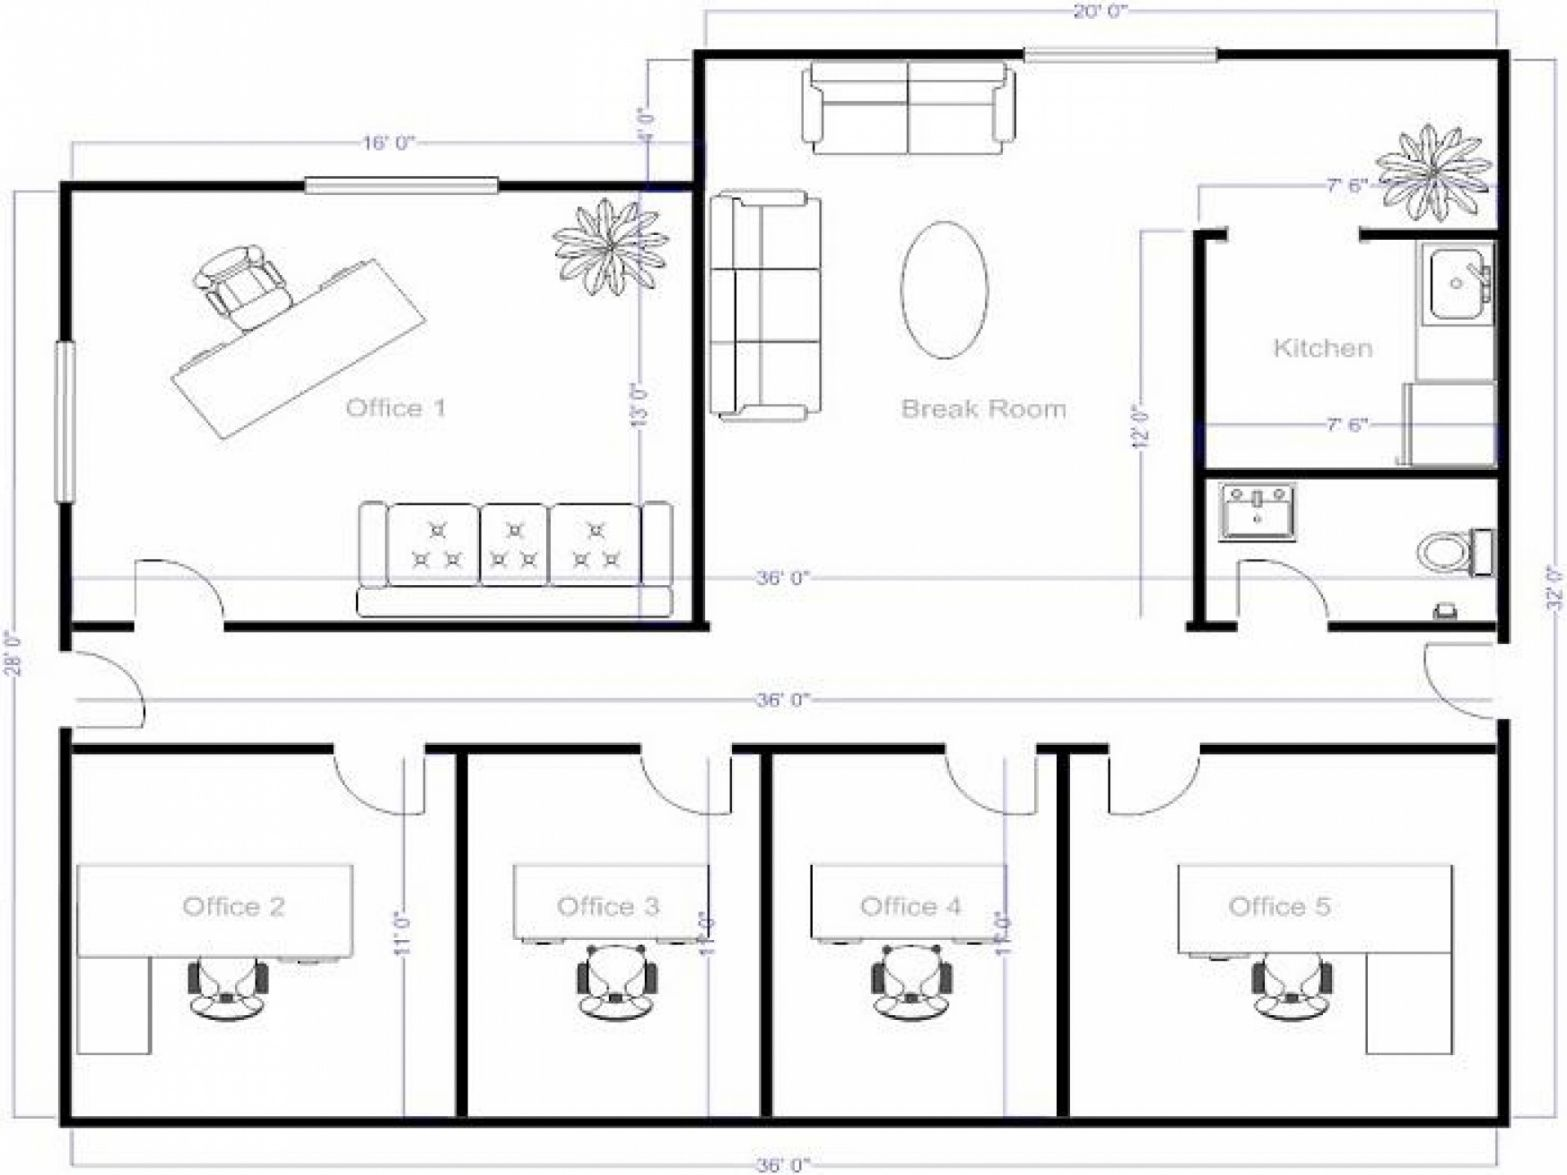 Pin by Prtha lastnight on room ideas low budget in 2019 ... House Plan Drawing Tool Online on online annotation tool, online drawing board, online design tool, manga tool, online diagram tool, online drawing and coloring, online color mixing tool, online dictionary, online drawing pad, online drawing and painting,